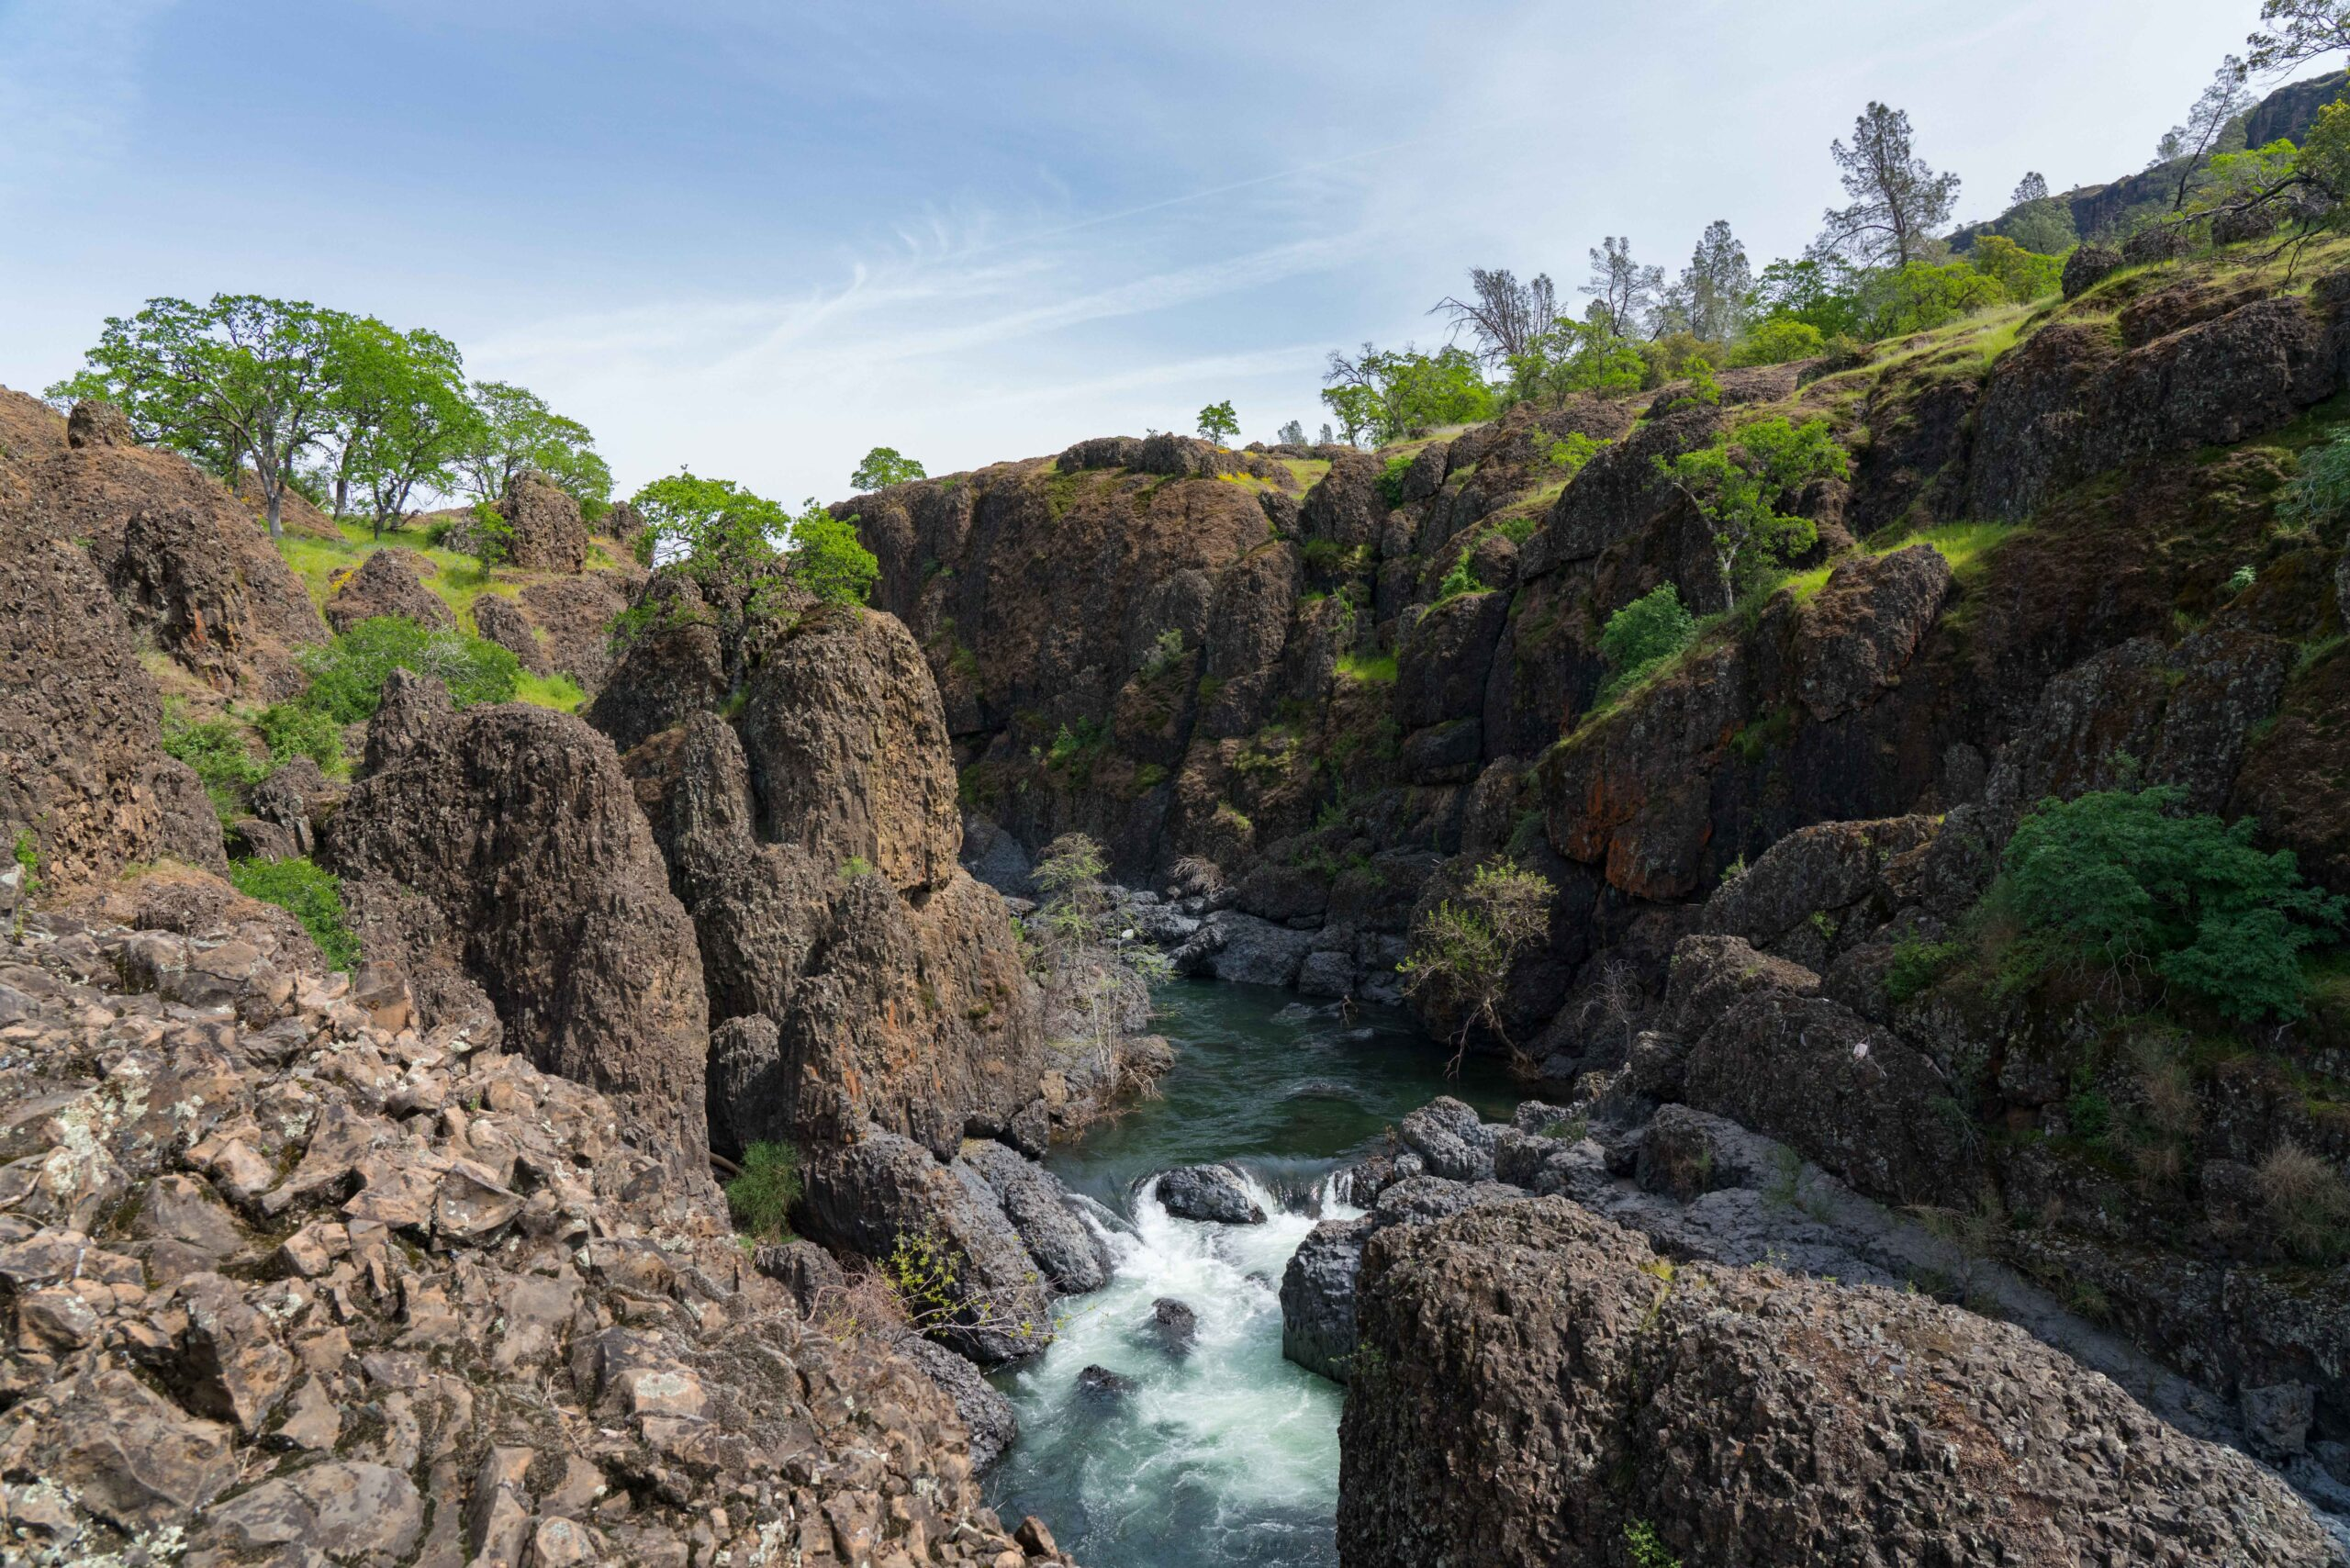 Landscape Photography in Upper Bidwell Park - Website Design & Photography Based in Chico, CA